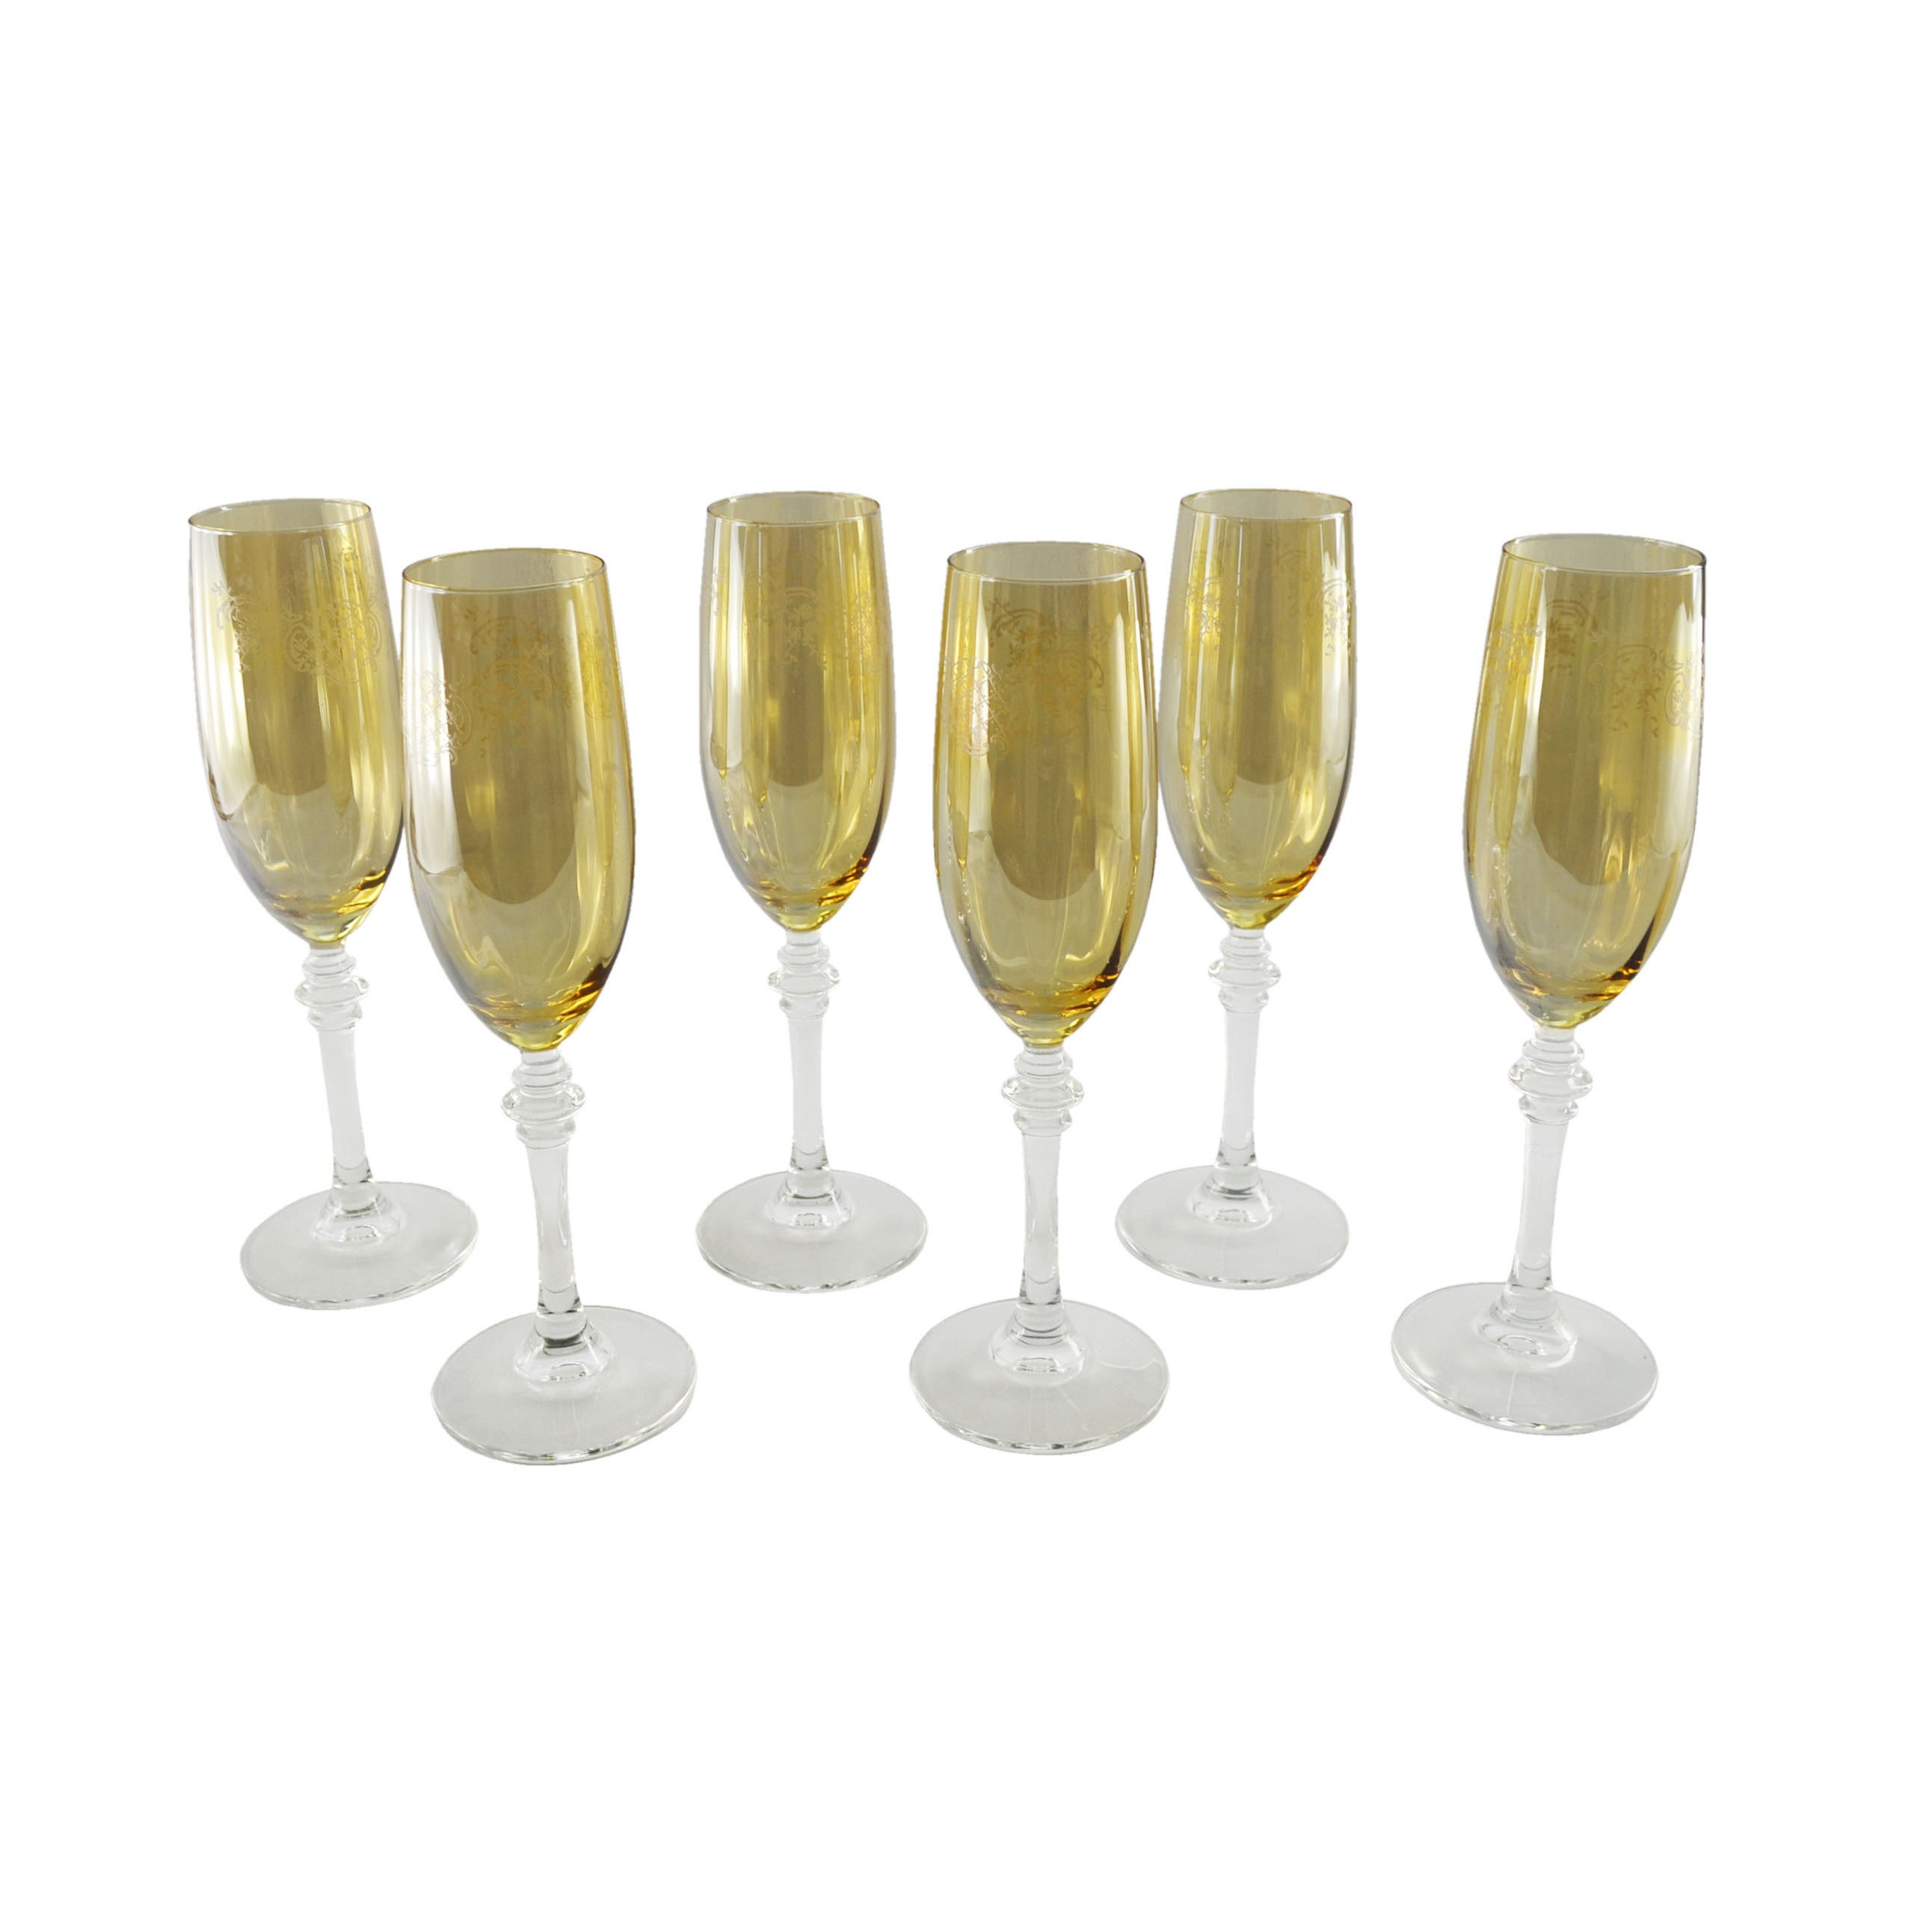 Three Star Italian Crafted Gold Tinted Champagne Flutes (...